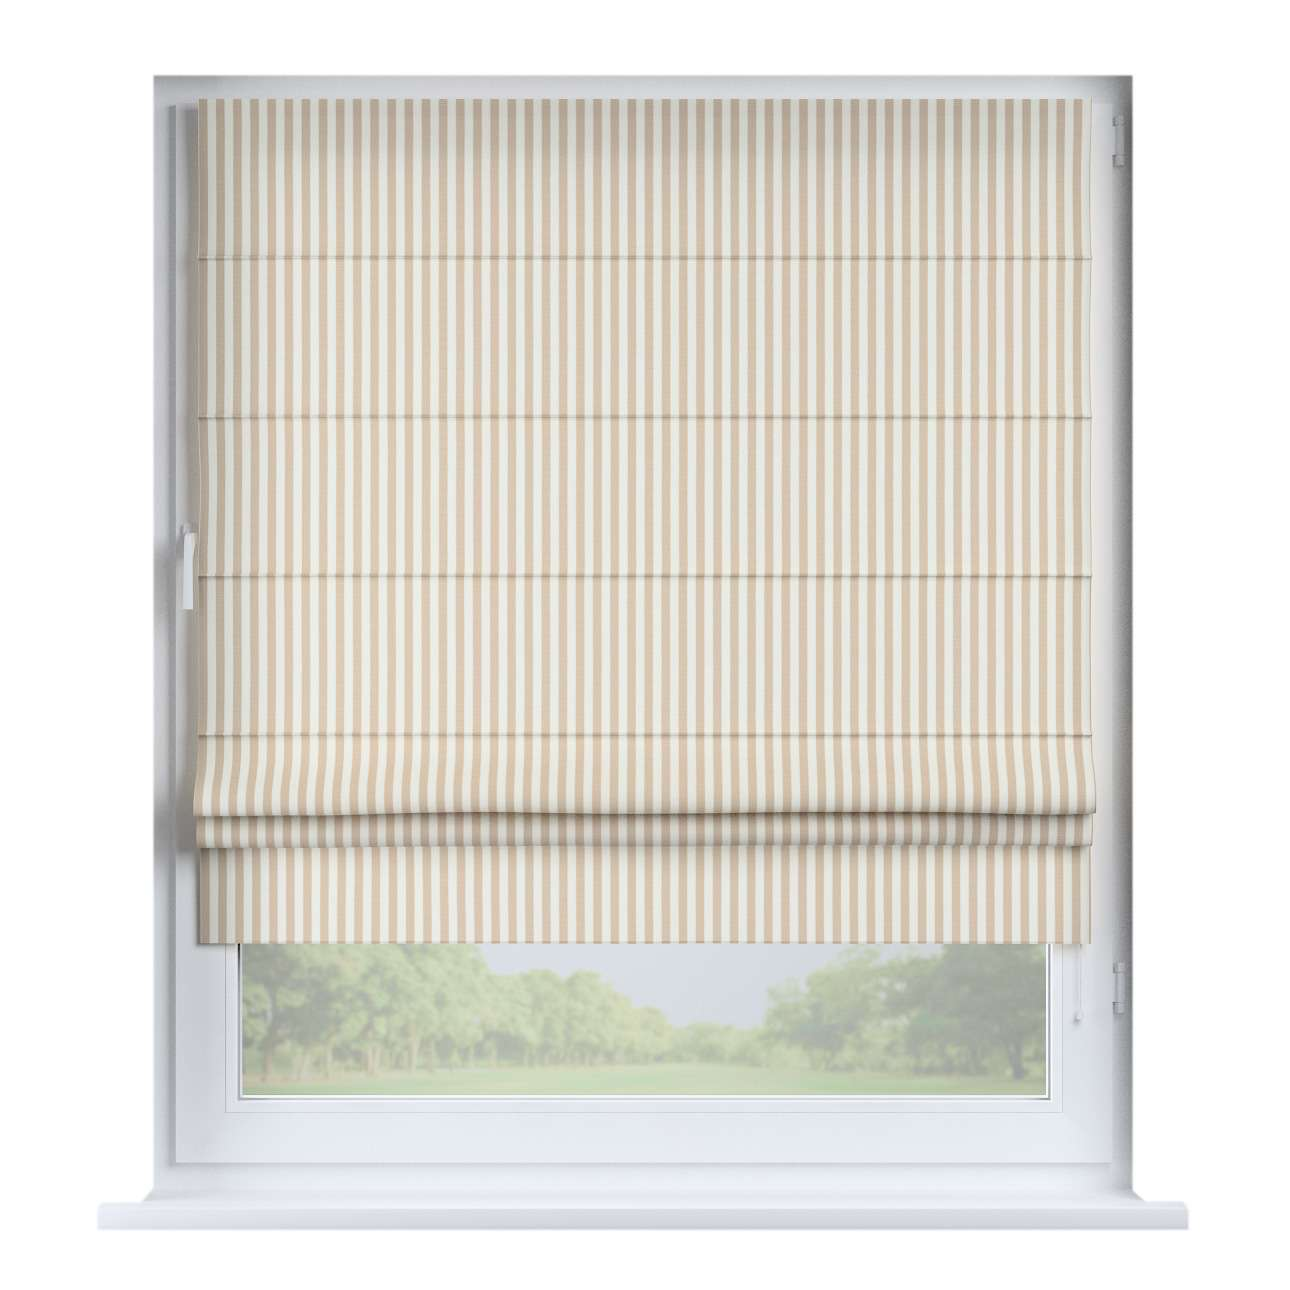 Padva roman blind  80 x 170 cm (31.5 x 67 inch) in collection Quadro, fabric: 136-07